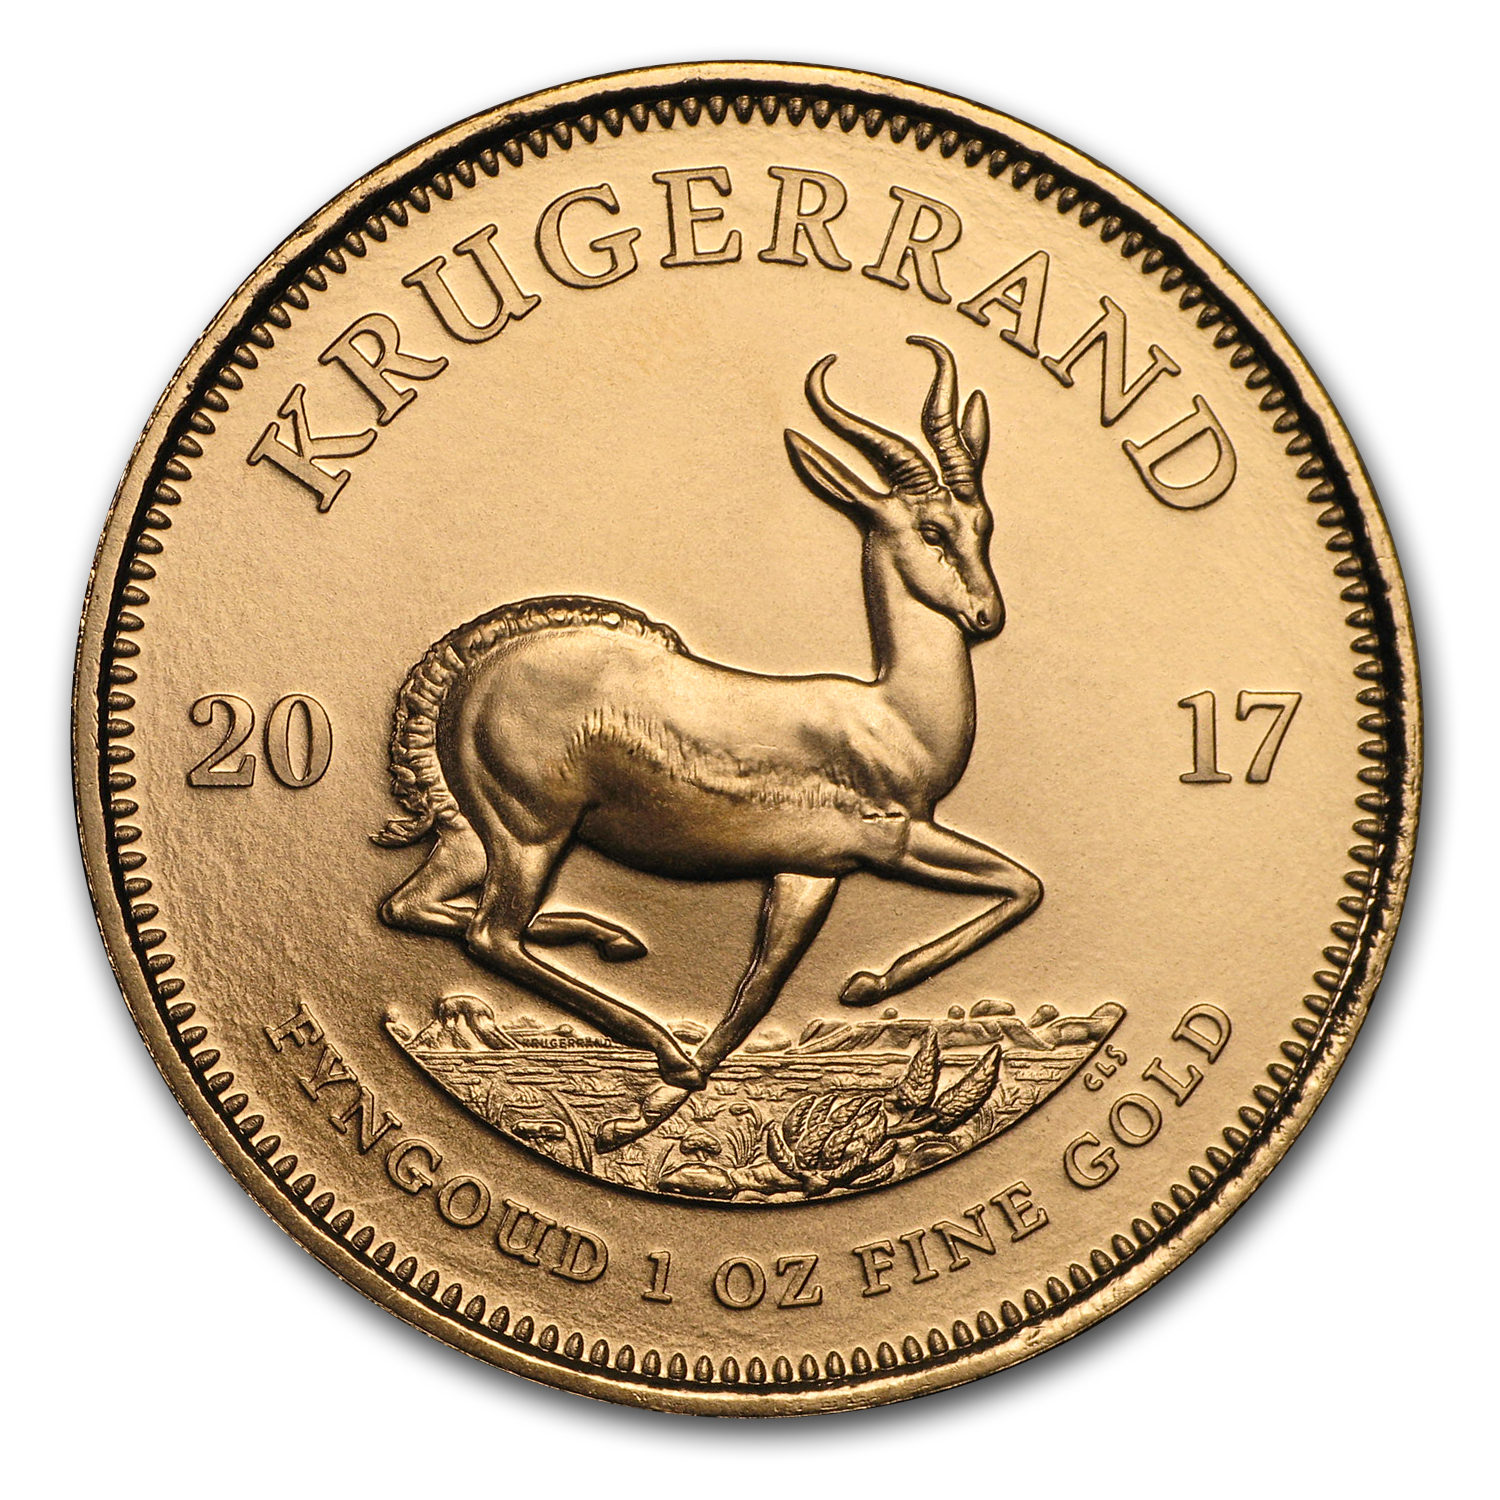 2017 South Africa 1 oz Gold Krugerrand BU